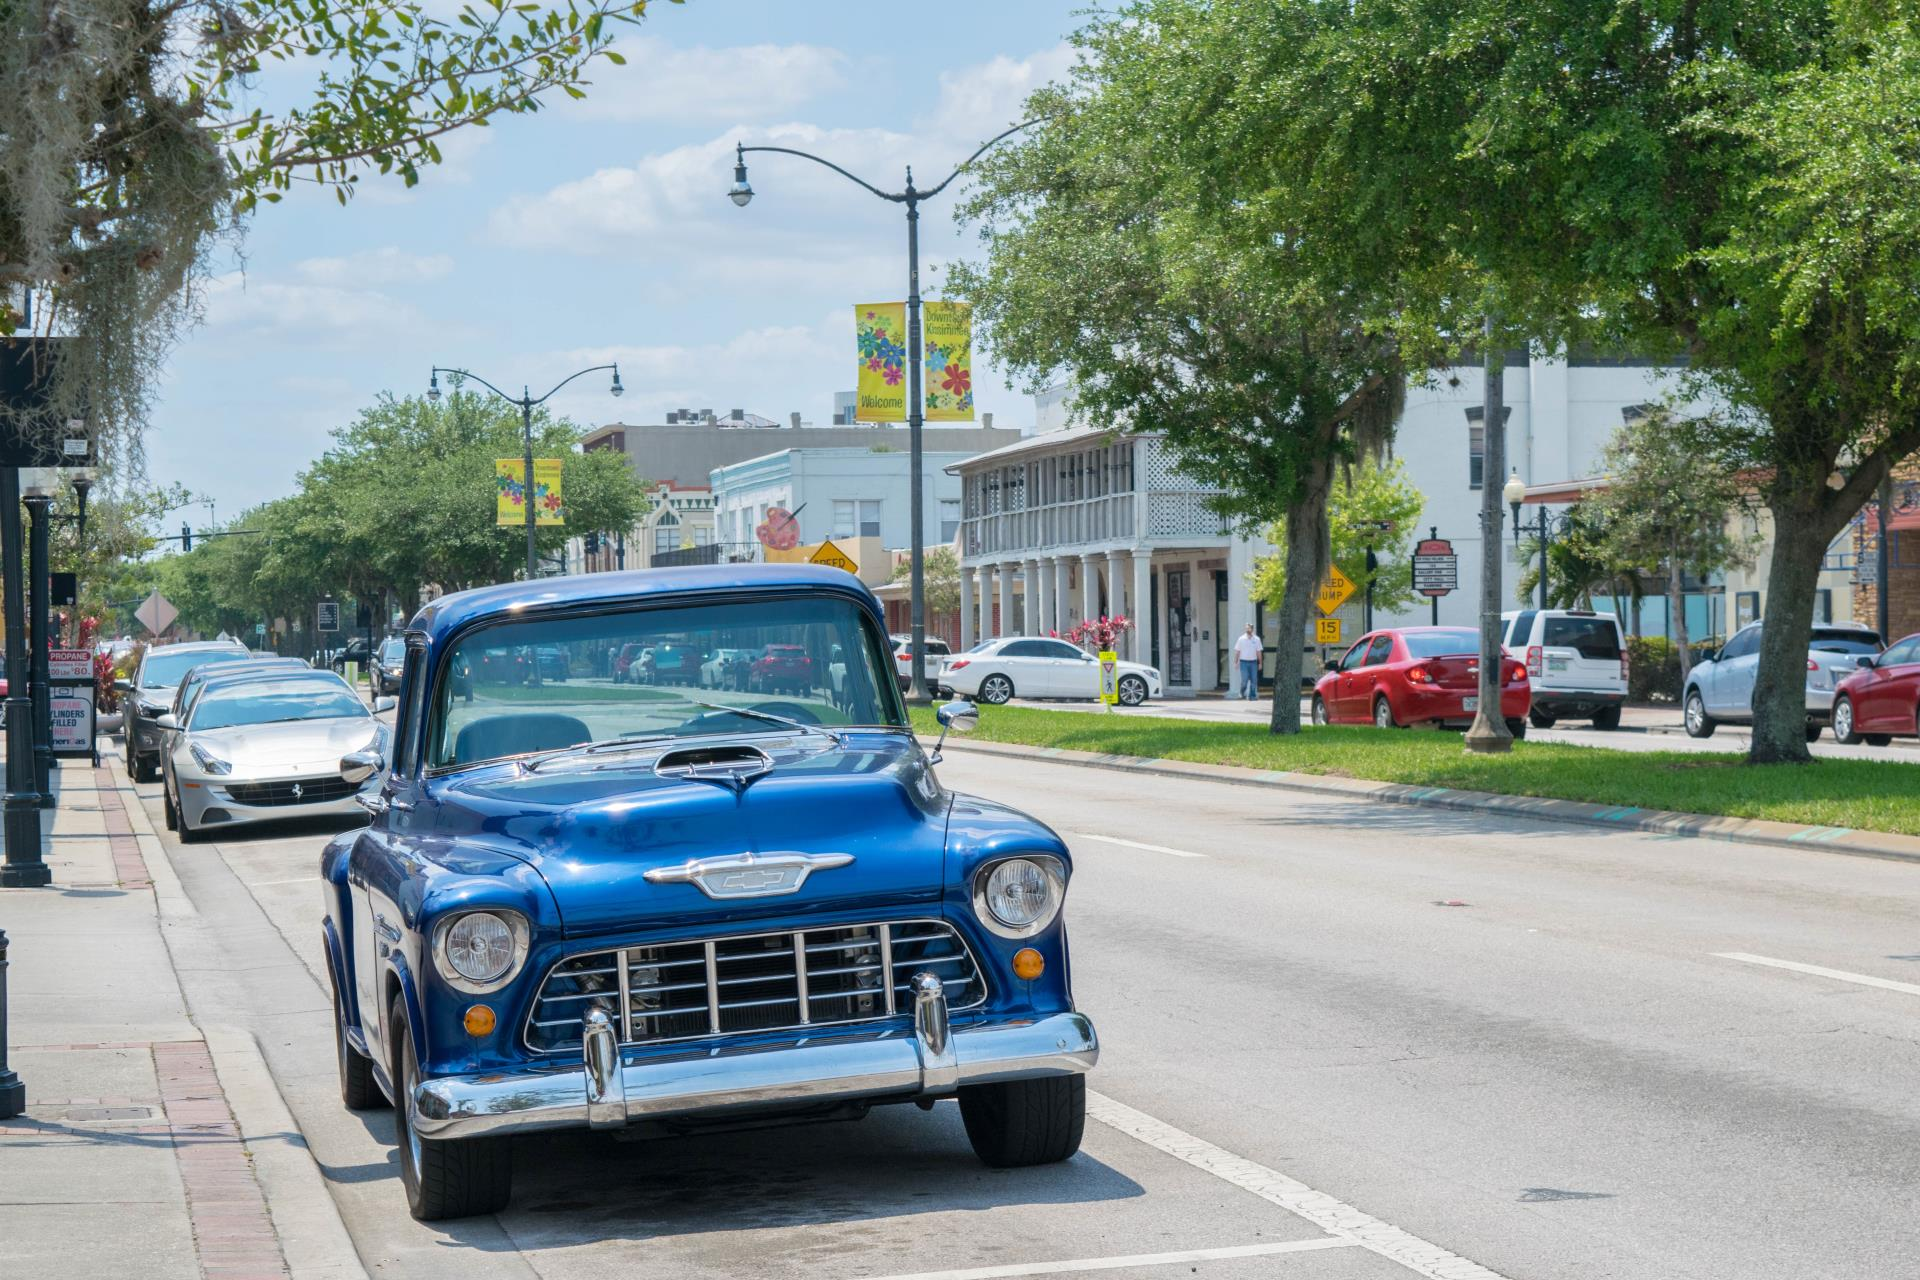 Antique Blue Truck downtown Kissimmee